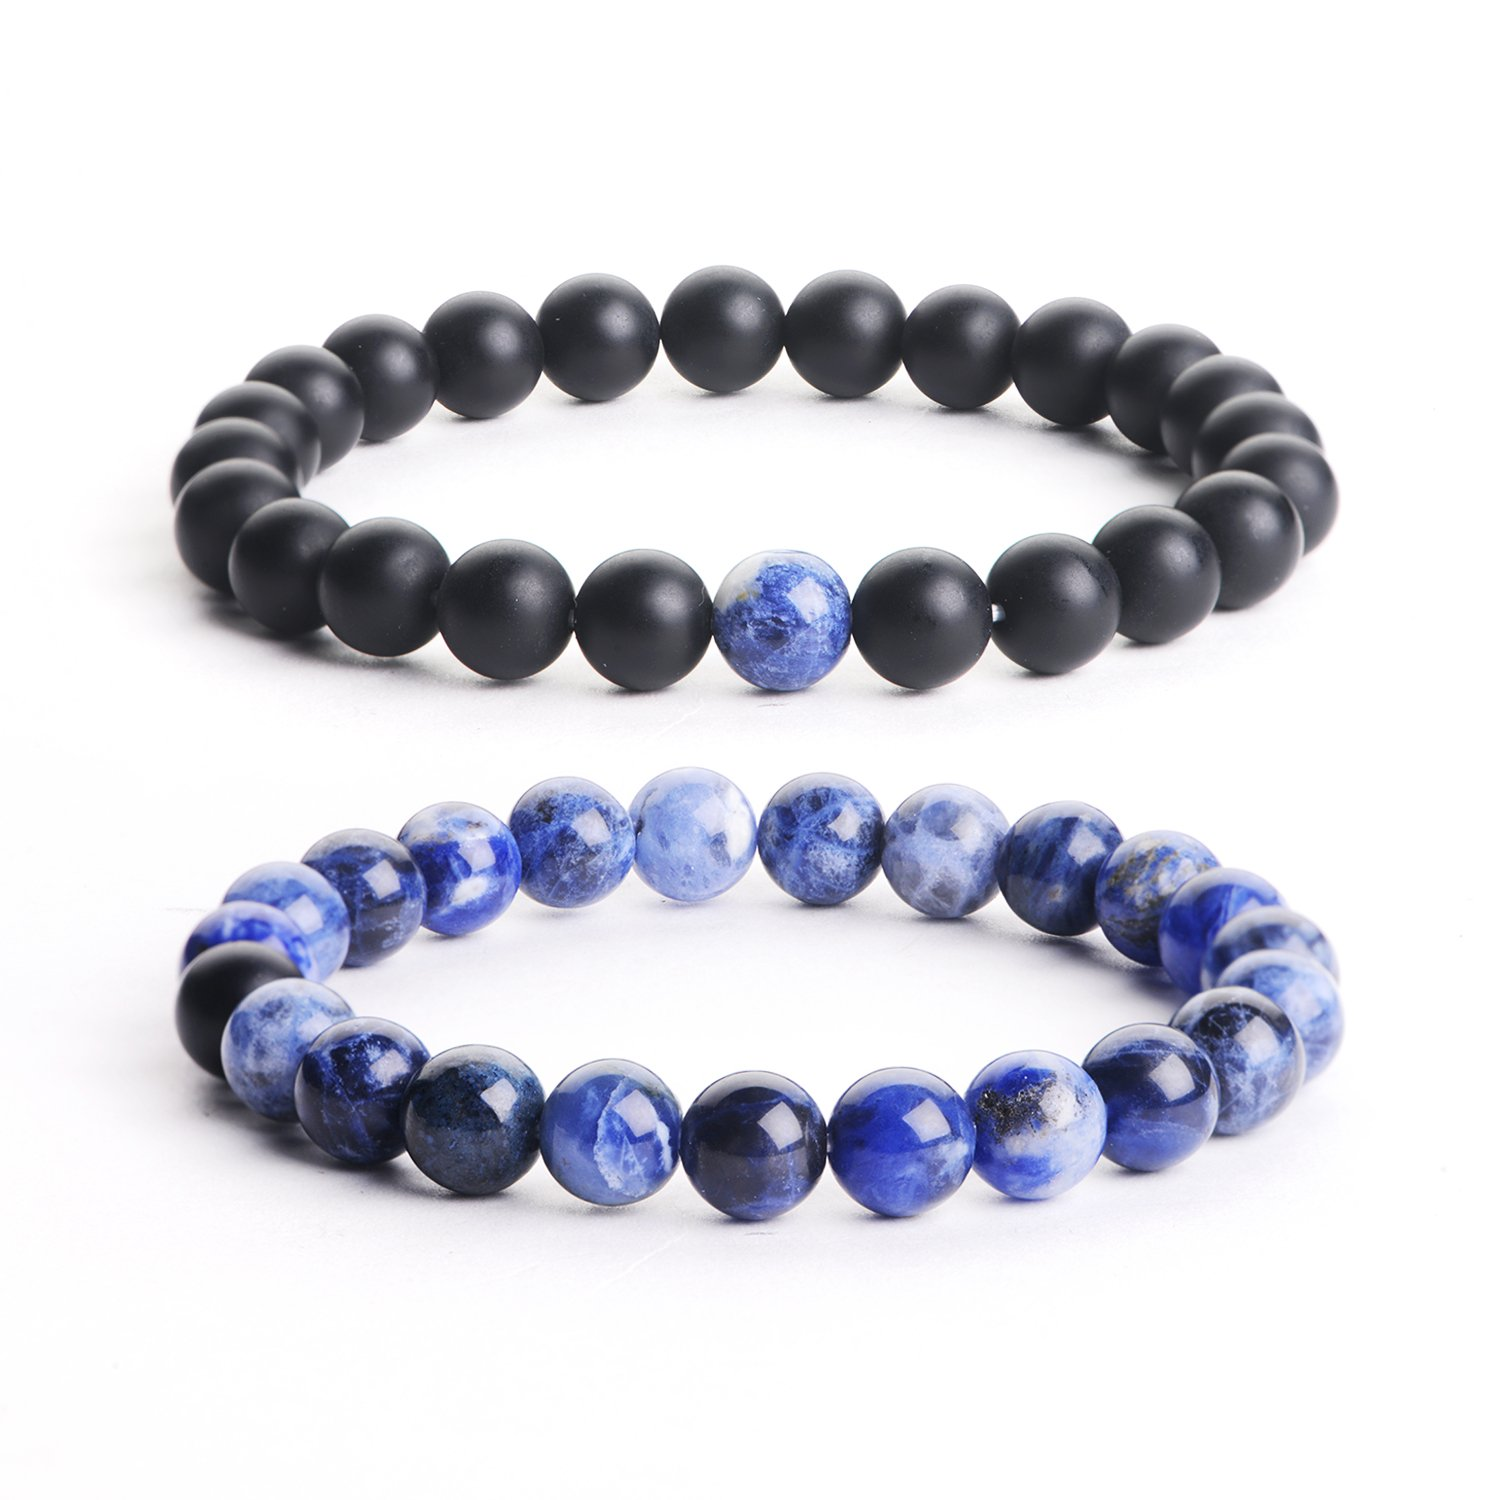 iSTONE Jewelry Natural Gemstone 8MM Couple Distance Round Beads Chakra Balancing Stretch Bracelet (Blue Agate+Matt Agate) by iSTONE Jewelry